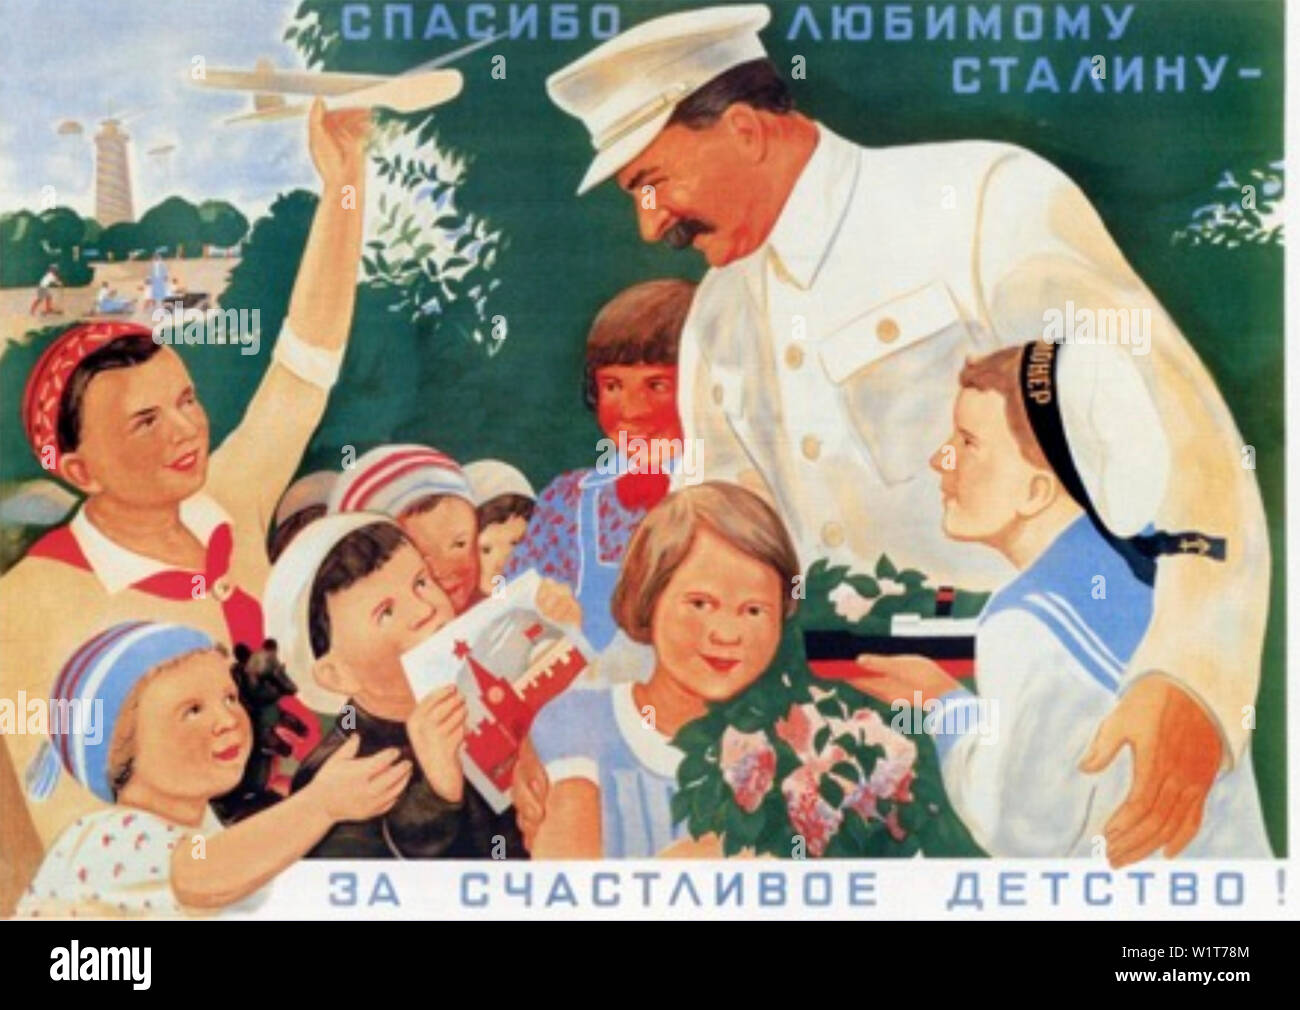 THANKS TO DEAR STALIN FOR A HAPPY CHILDHOOD 1936 Soviet poster - Stock Image